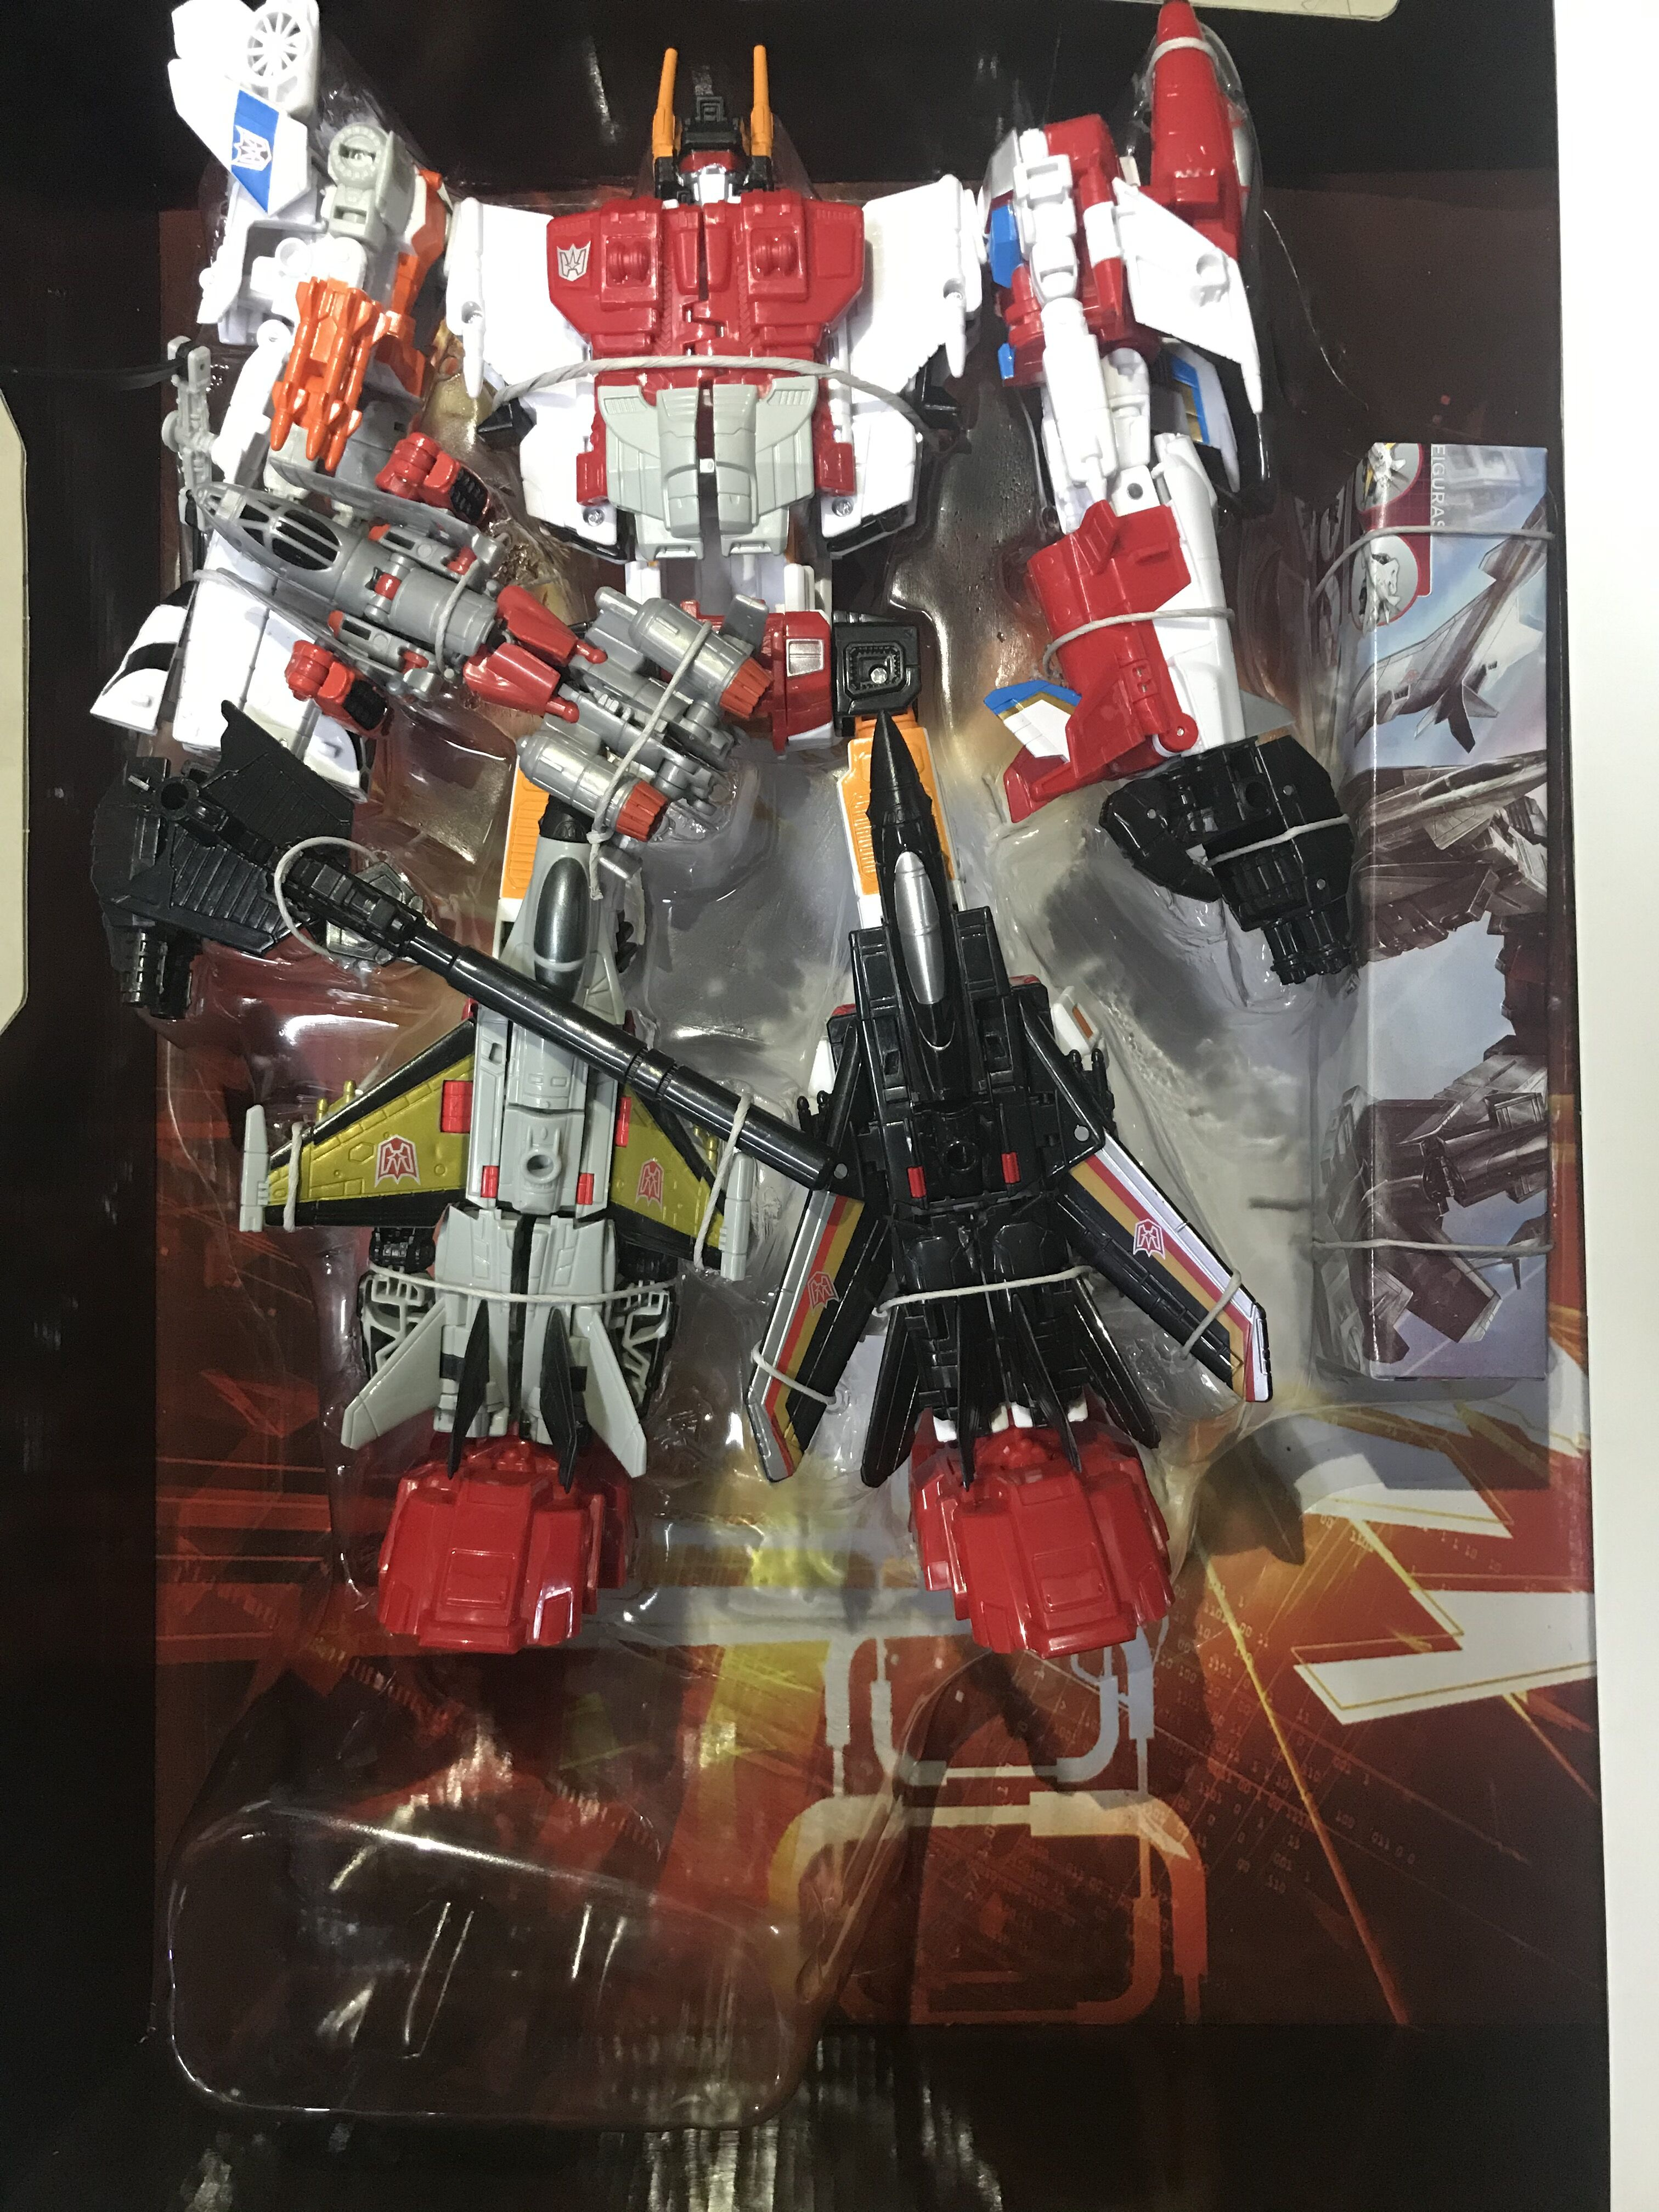 HZX Transformation Superion H-903 H903 Oversize IDW 5IN1 Combination NEW Upgrade Version Action Figure Robot Toys With Box